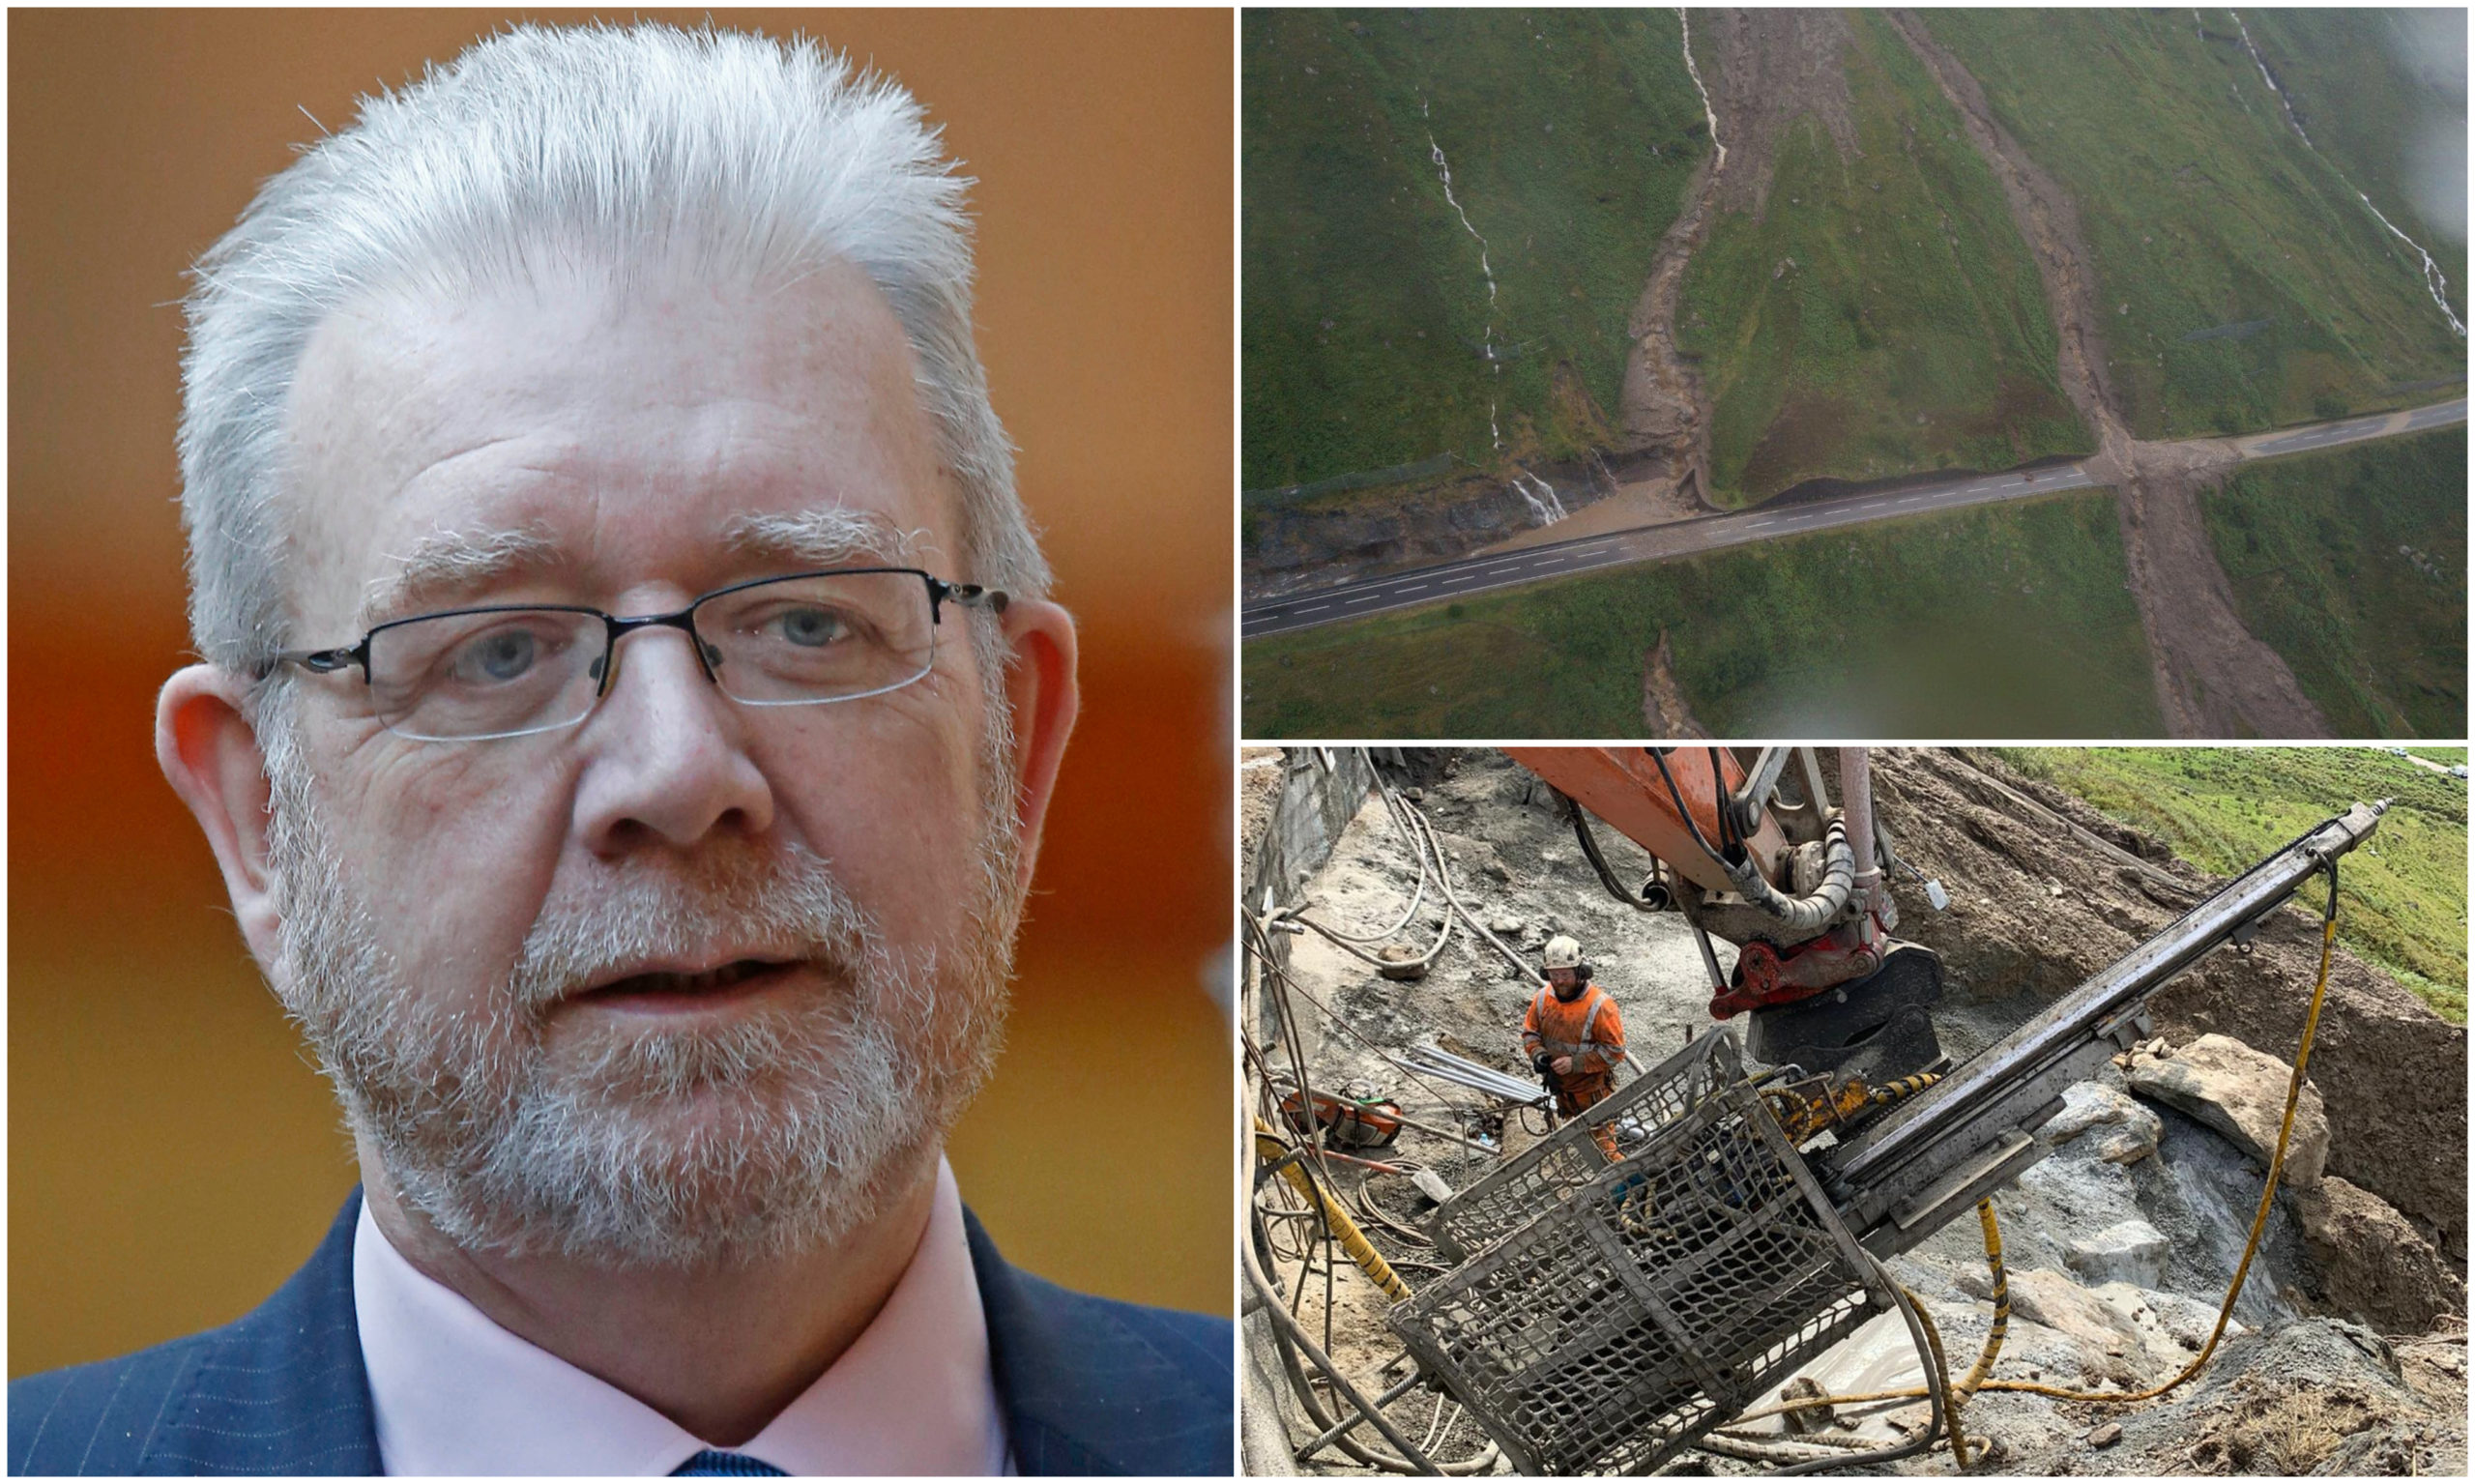 Argyll and Bute MSP Michael Russell has welcomed support to find a solution to address the landslip plagued Rest and Be Thankful